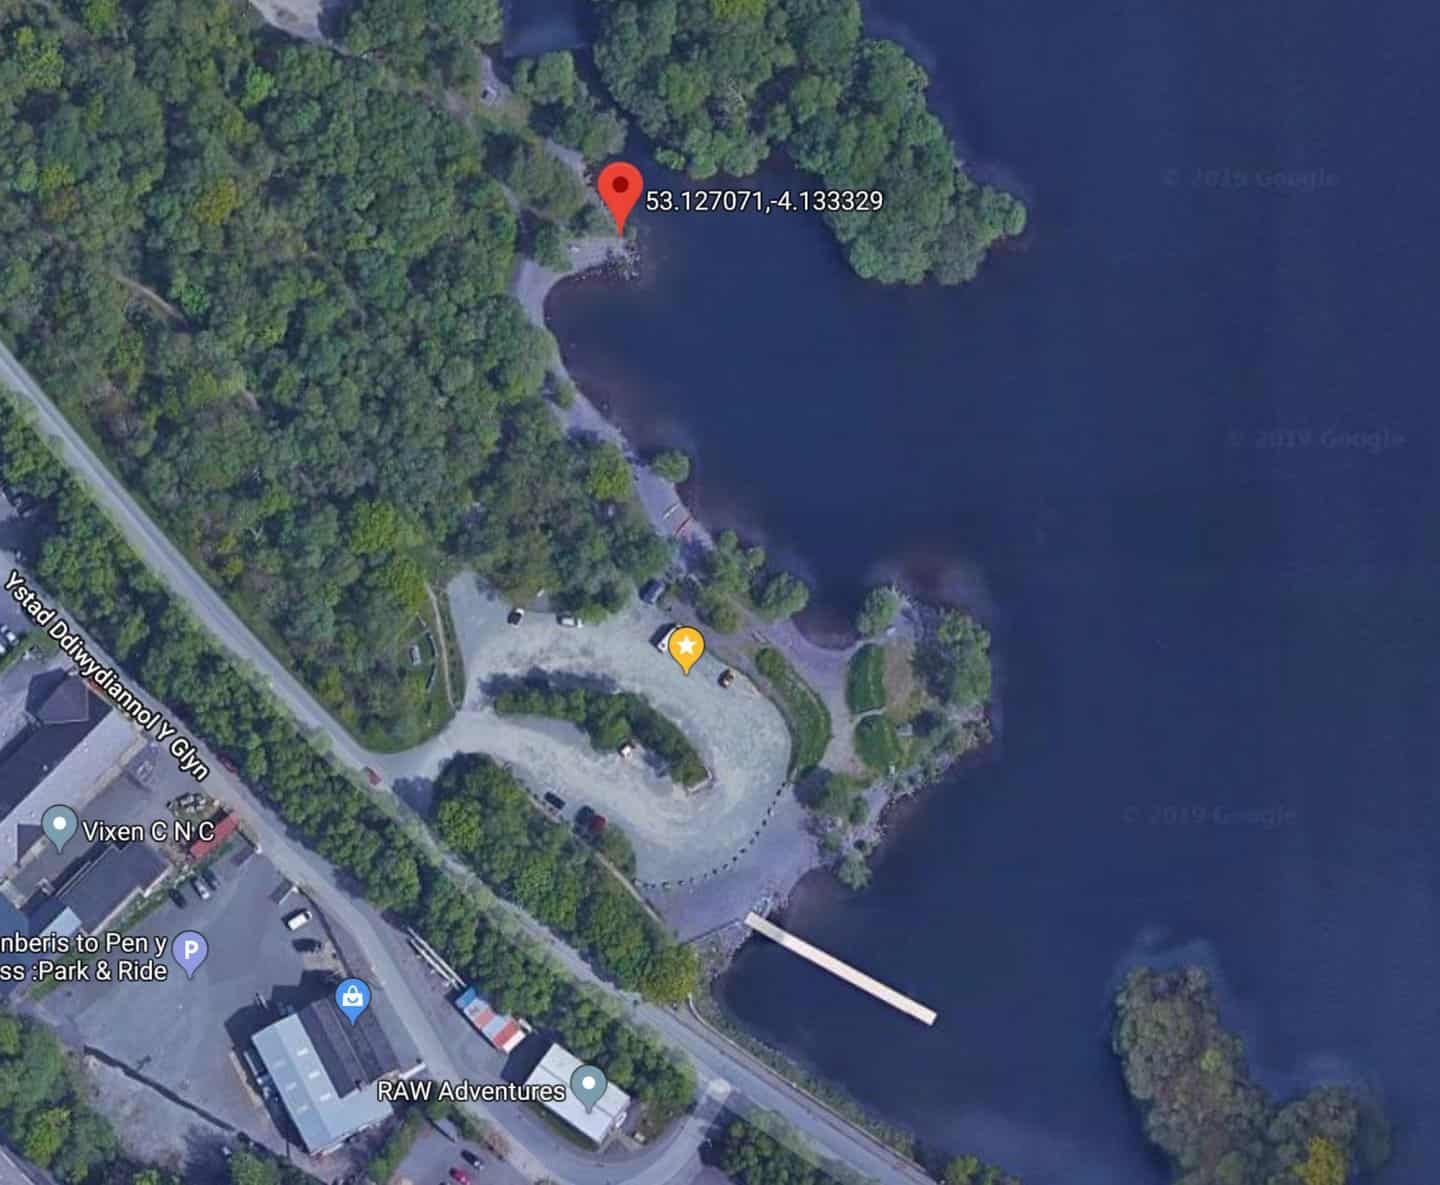 A Google satellite image of the parking and location of Lonely Tree.